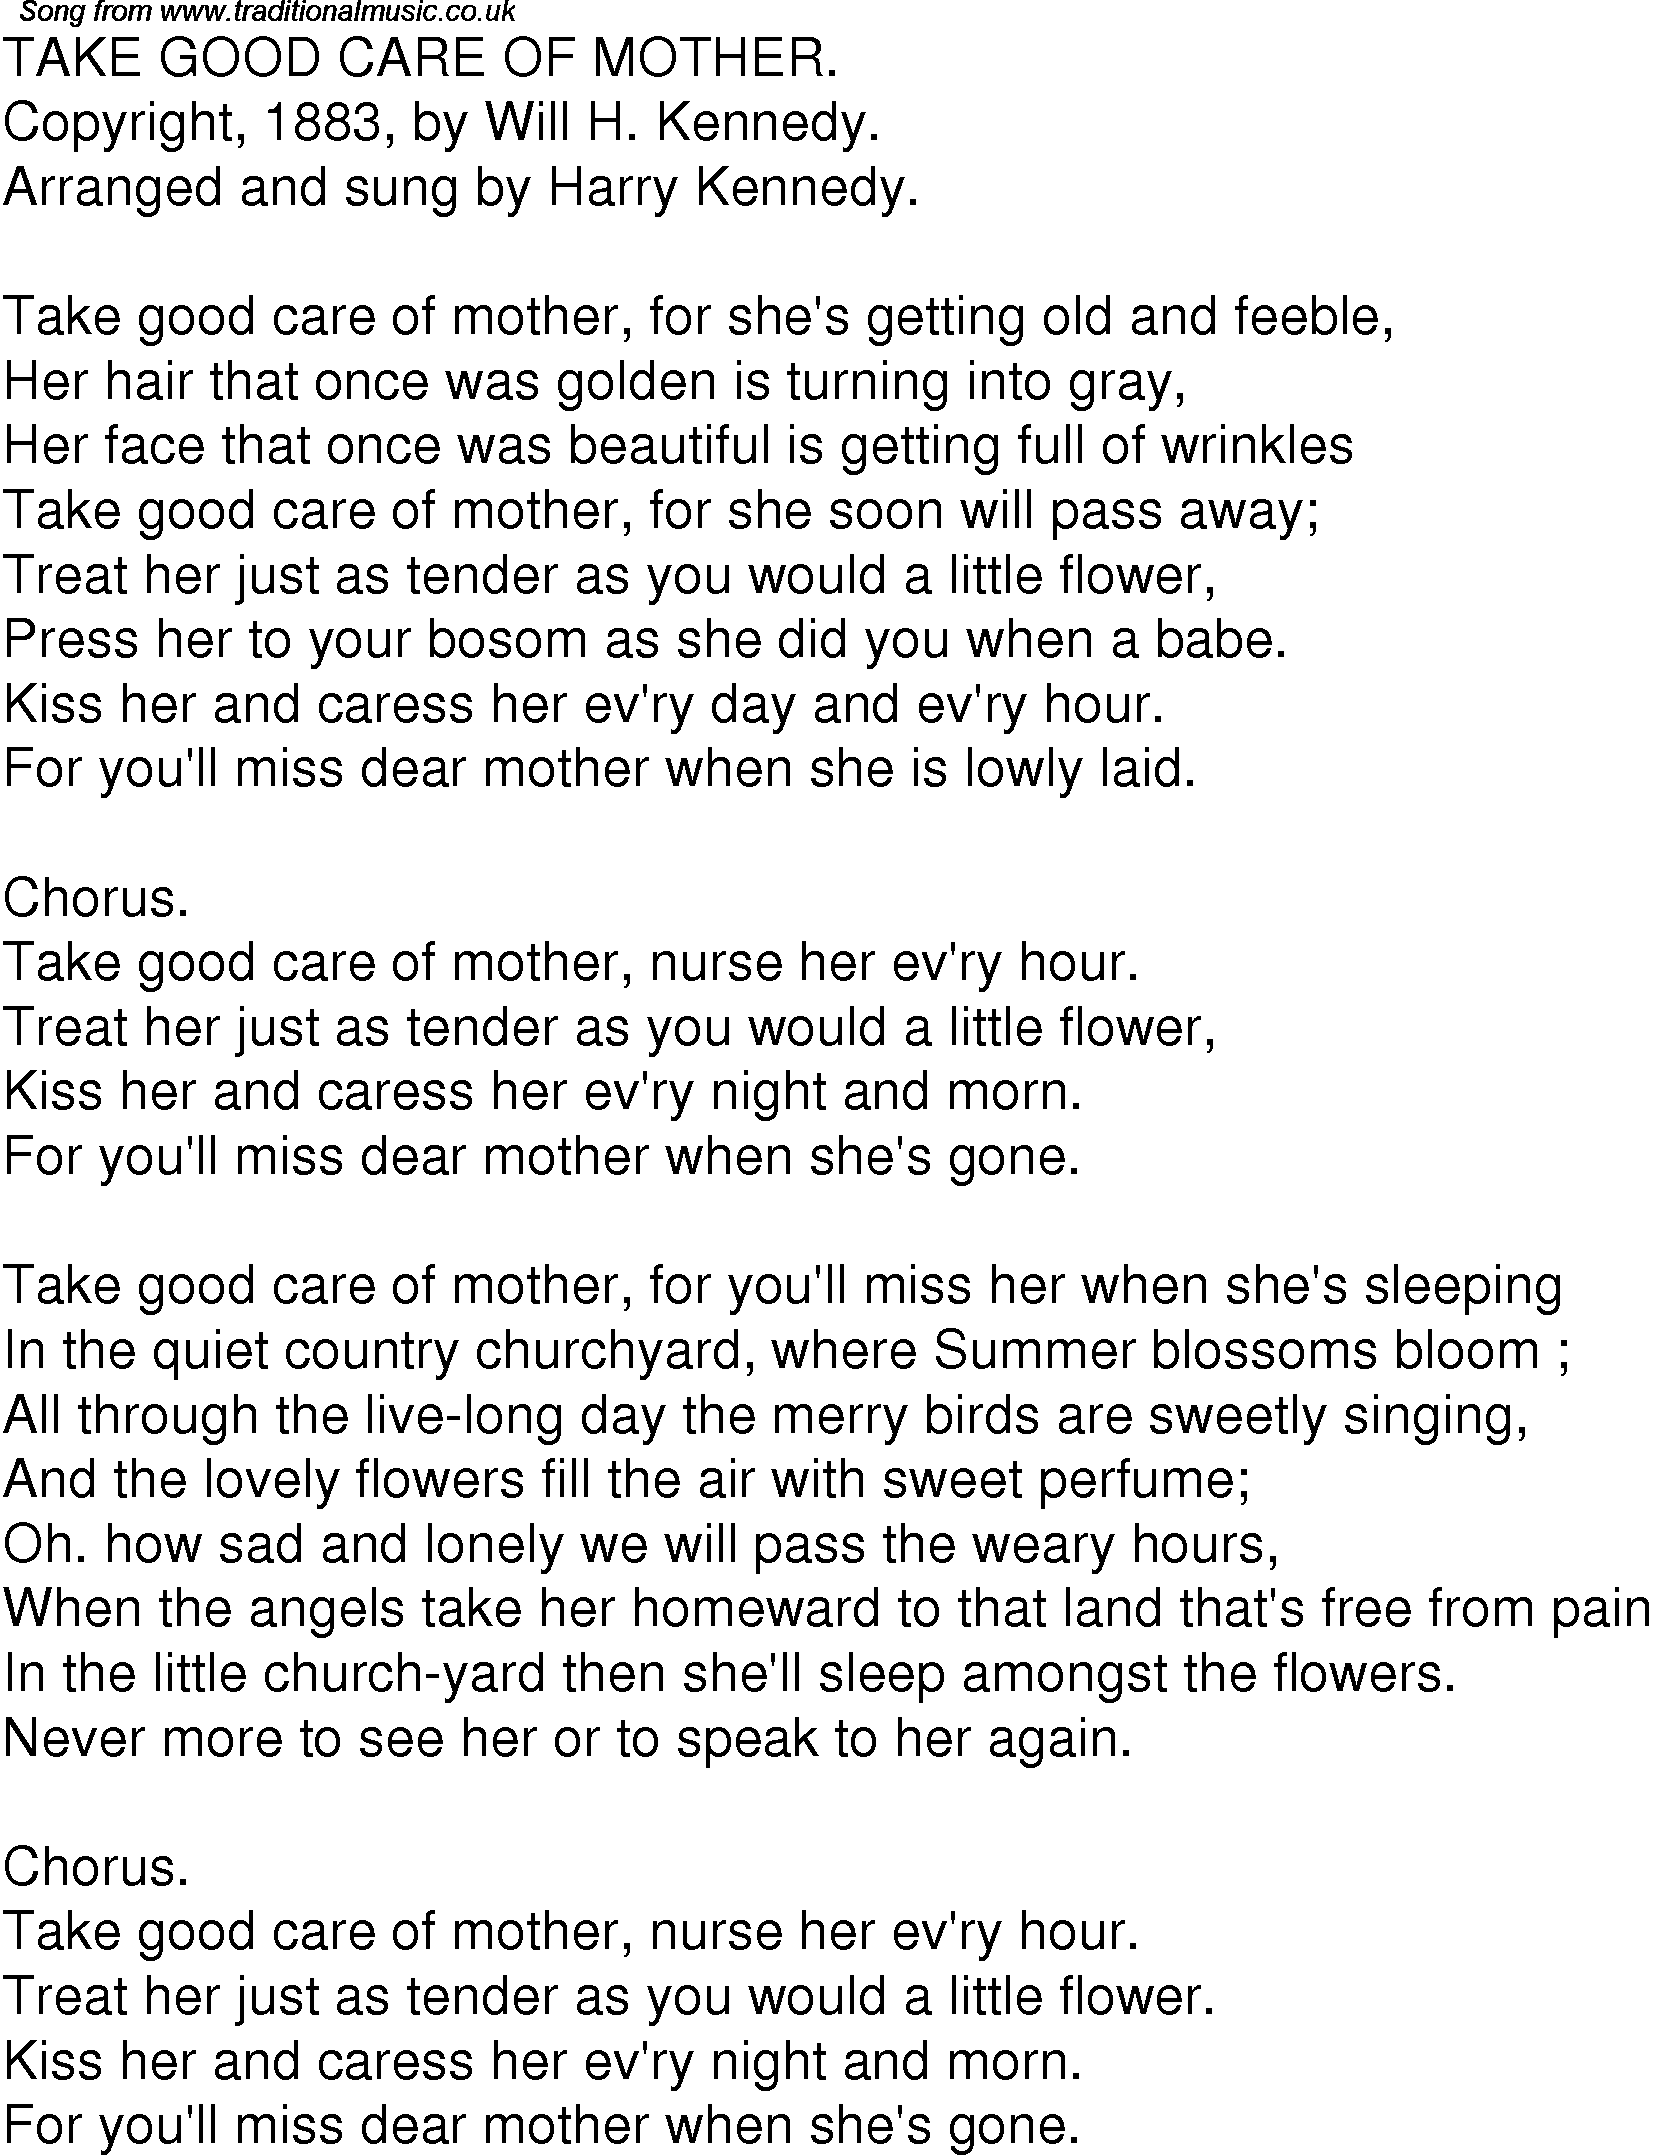 Old Time Song Lyrics for 09 Take Good Care Mother